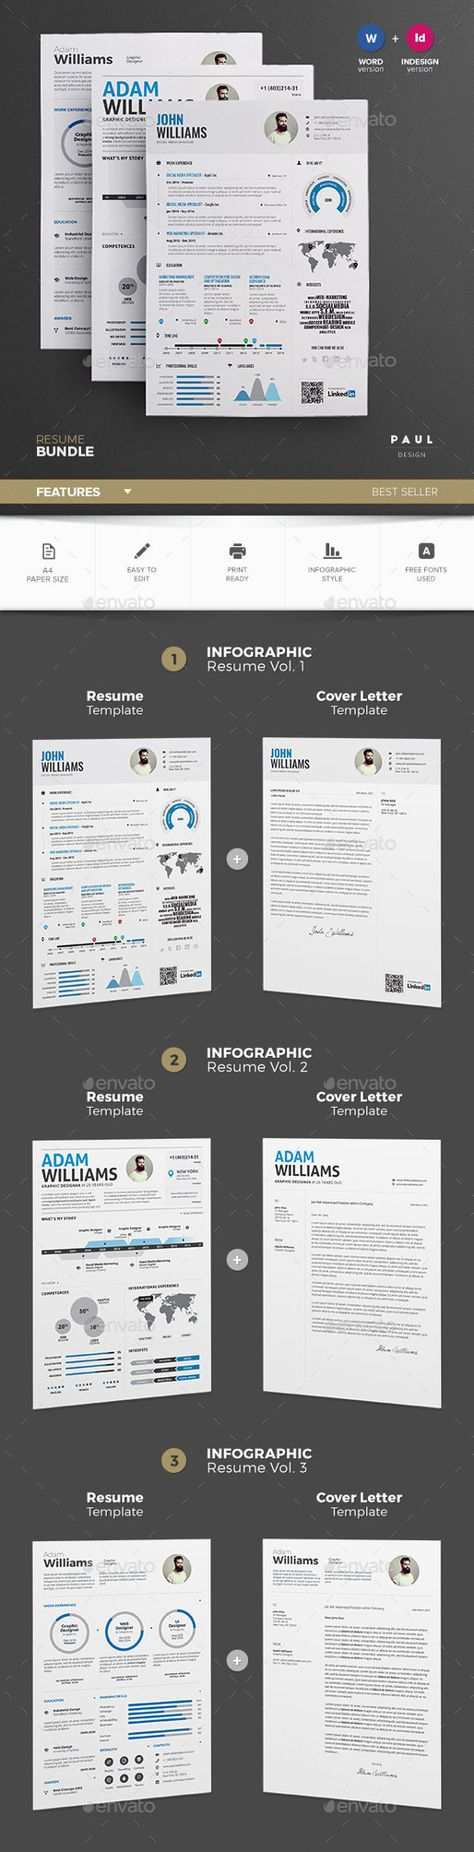 Buy infographic resume